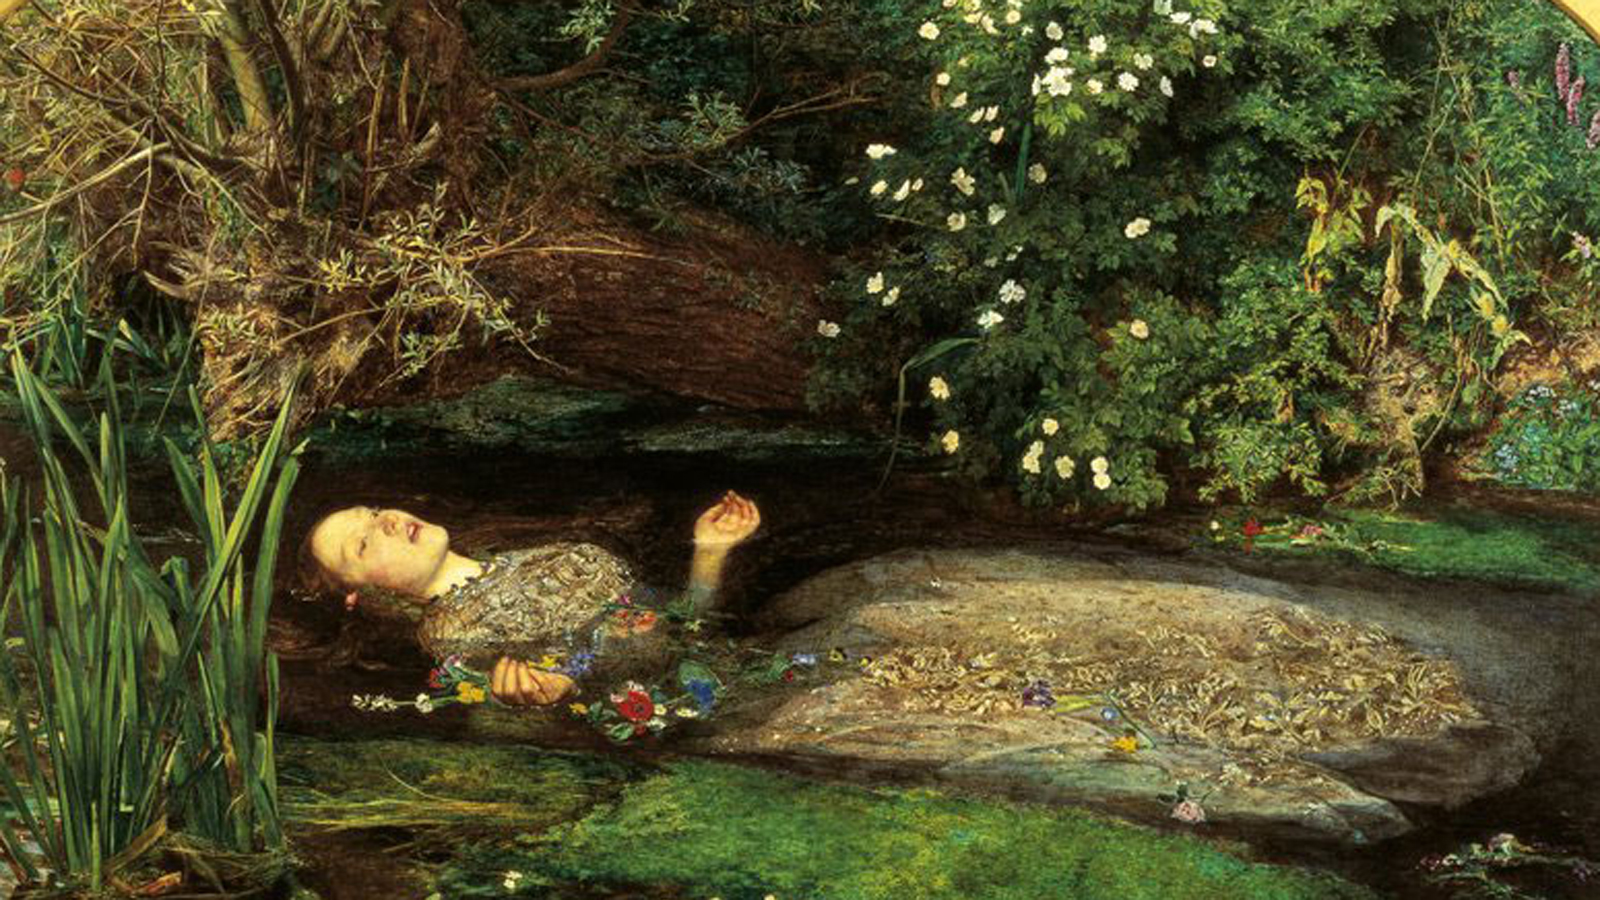 Ophelia, gender and madness